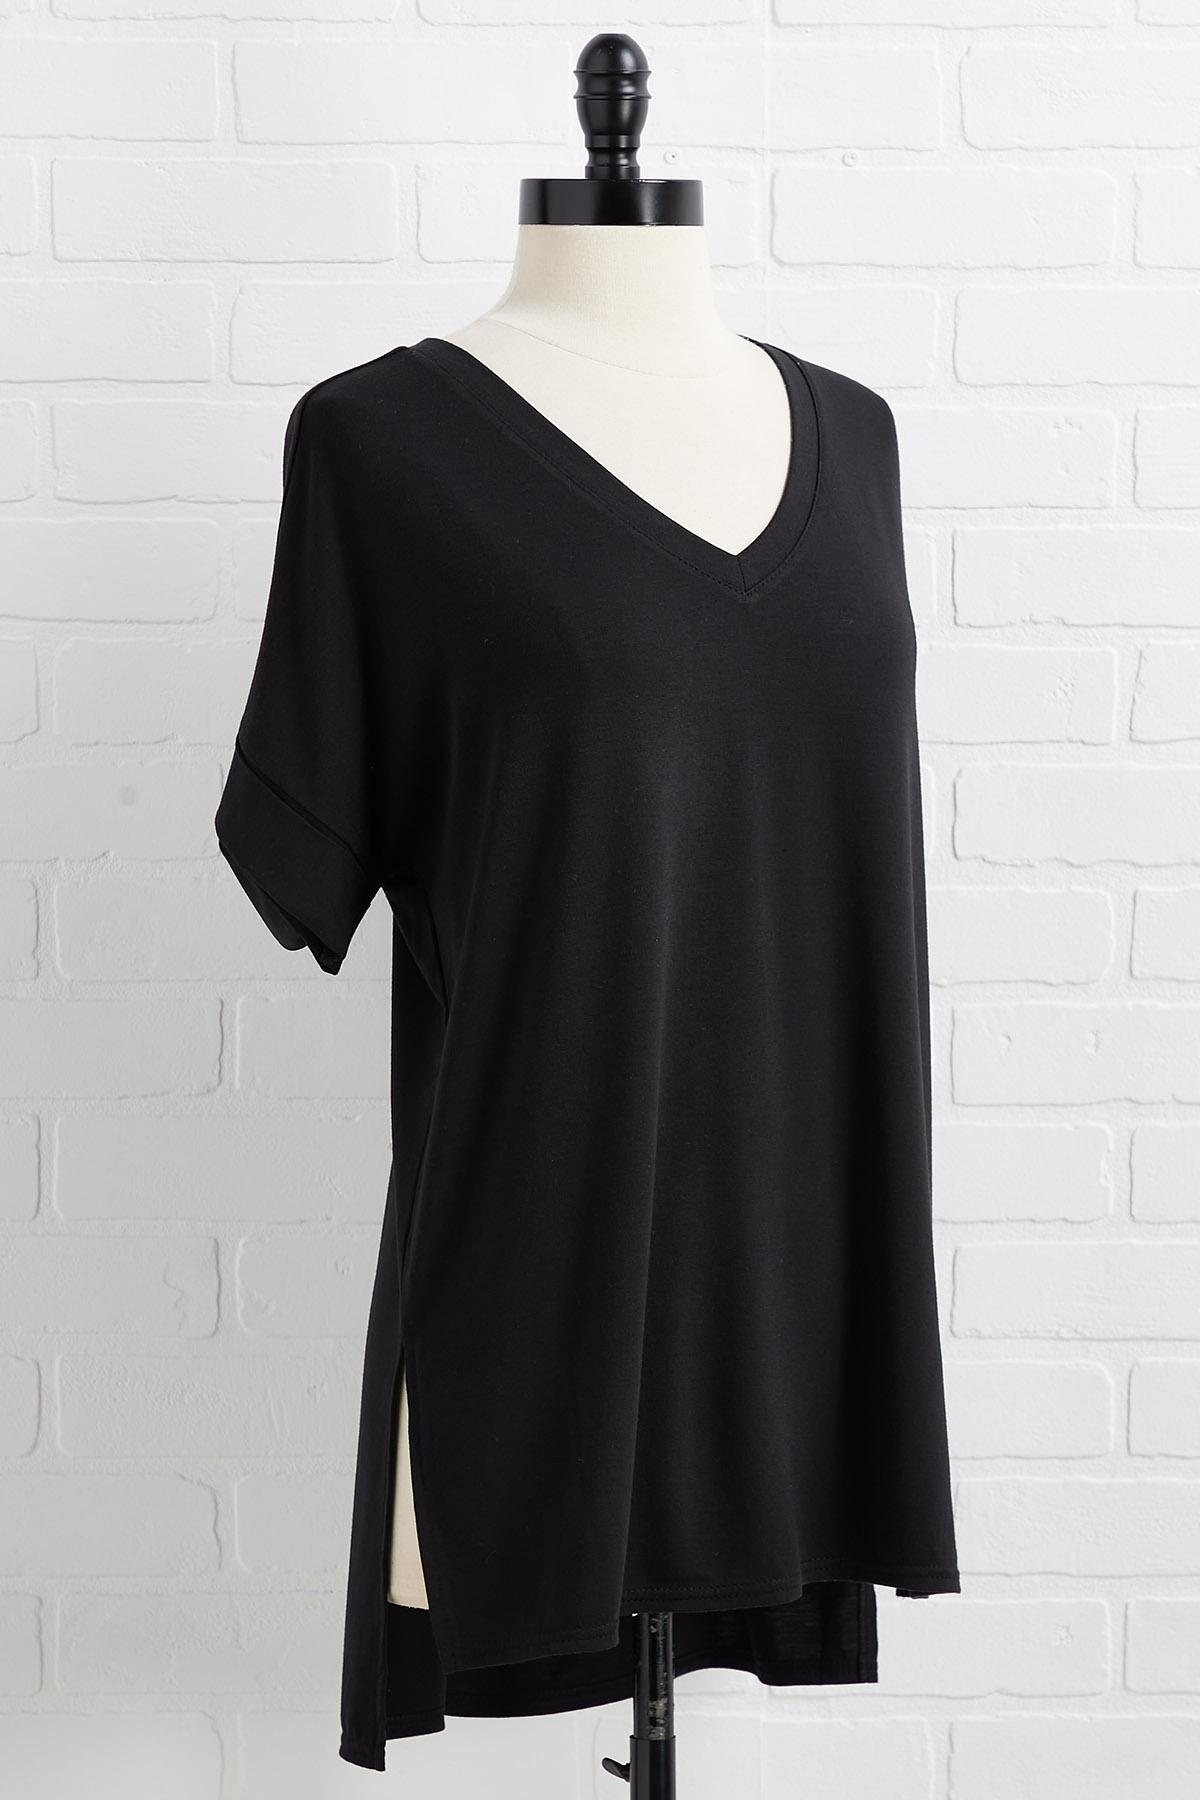 In A Slit Second Top